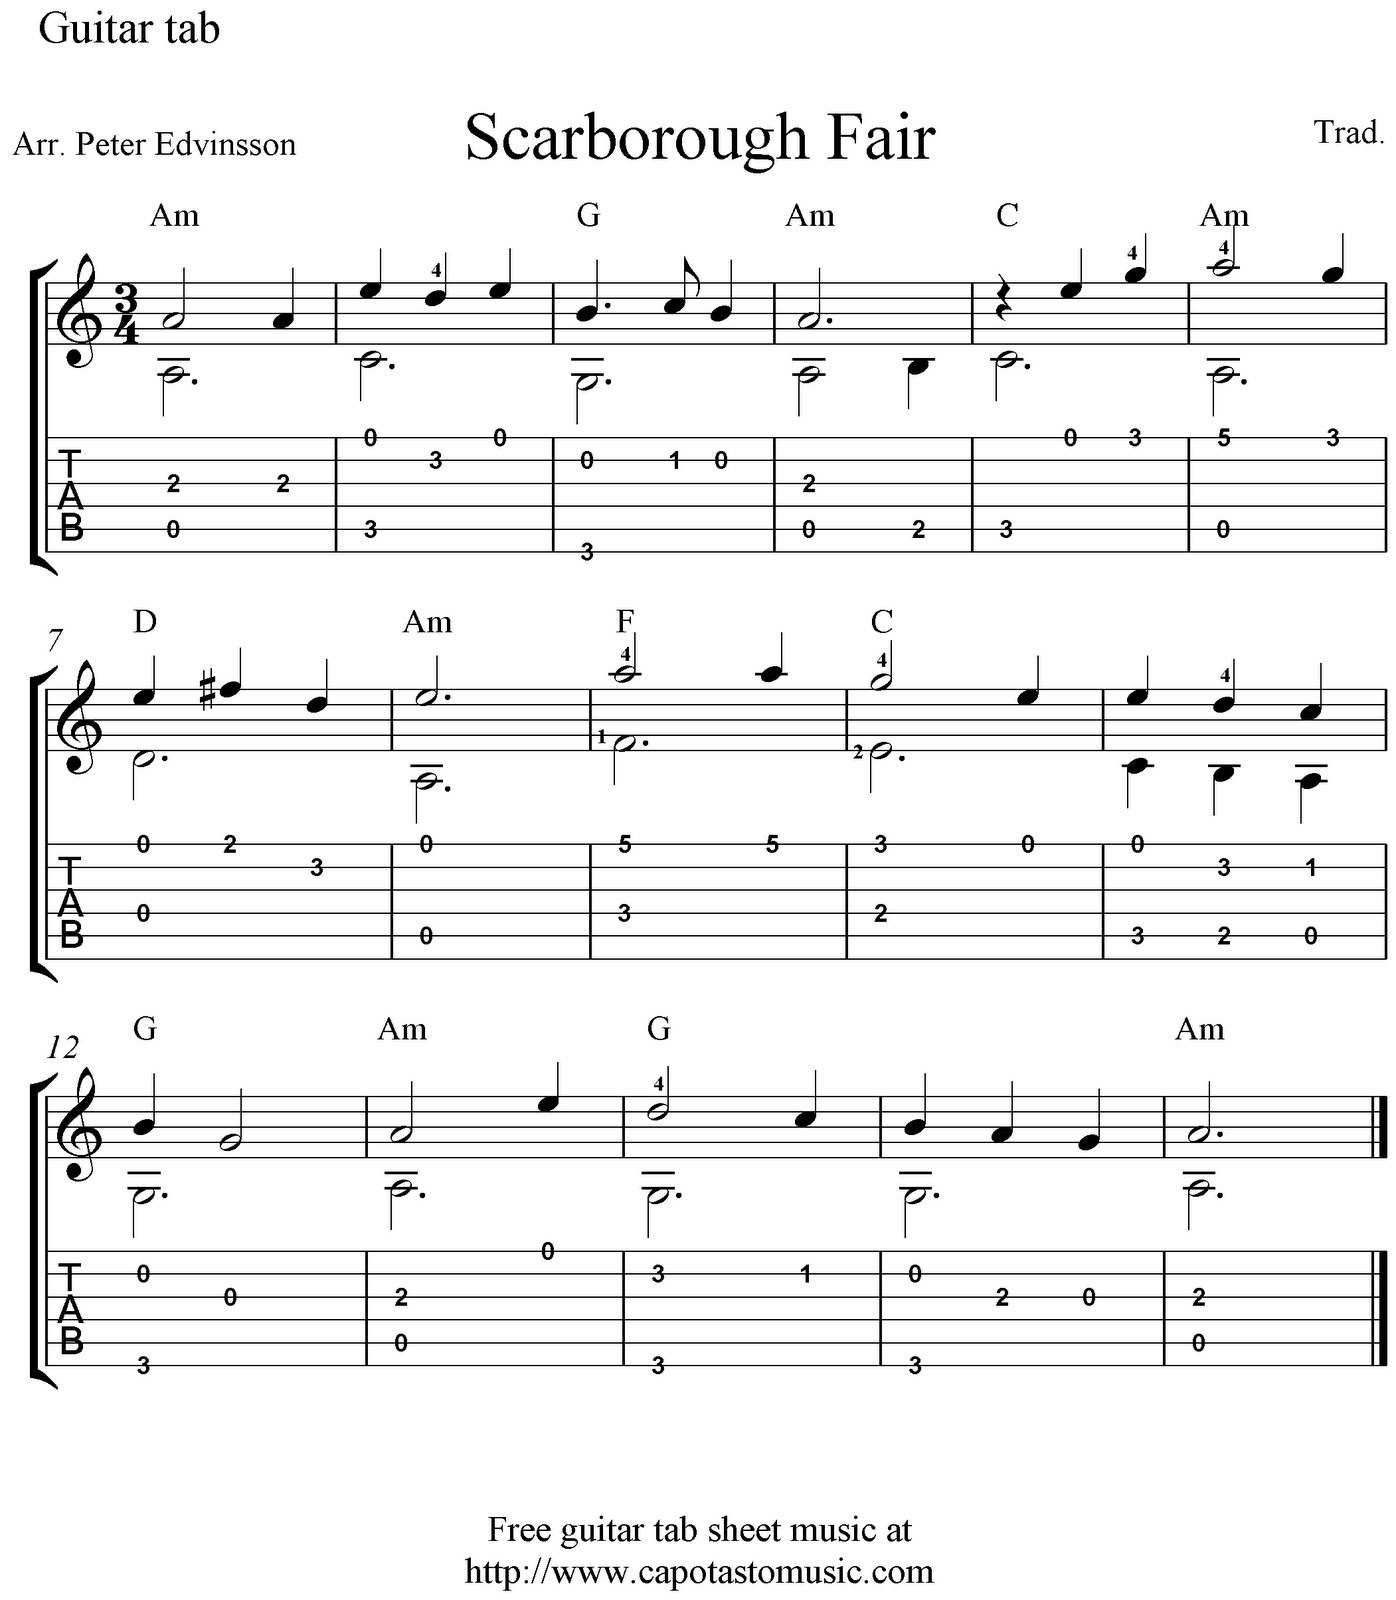 Scarborough Fair, free guitar tablature sheet music solo